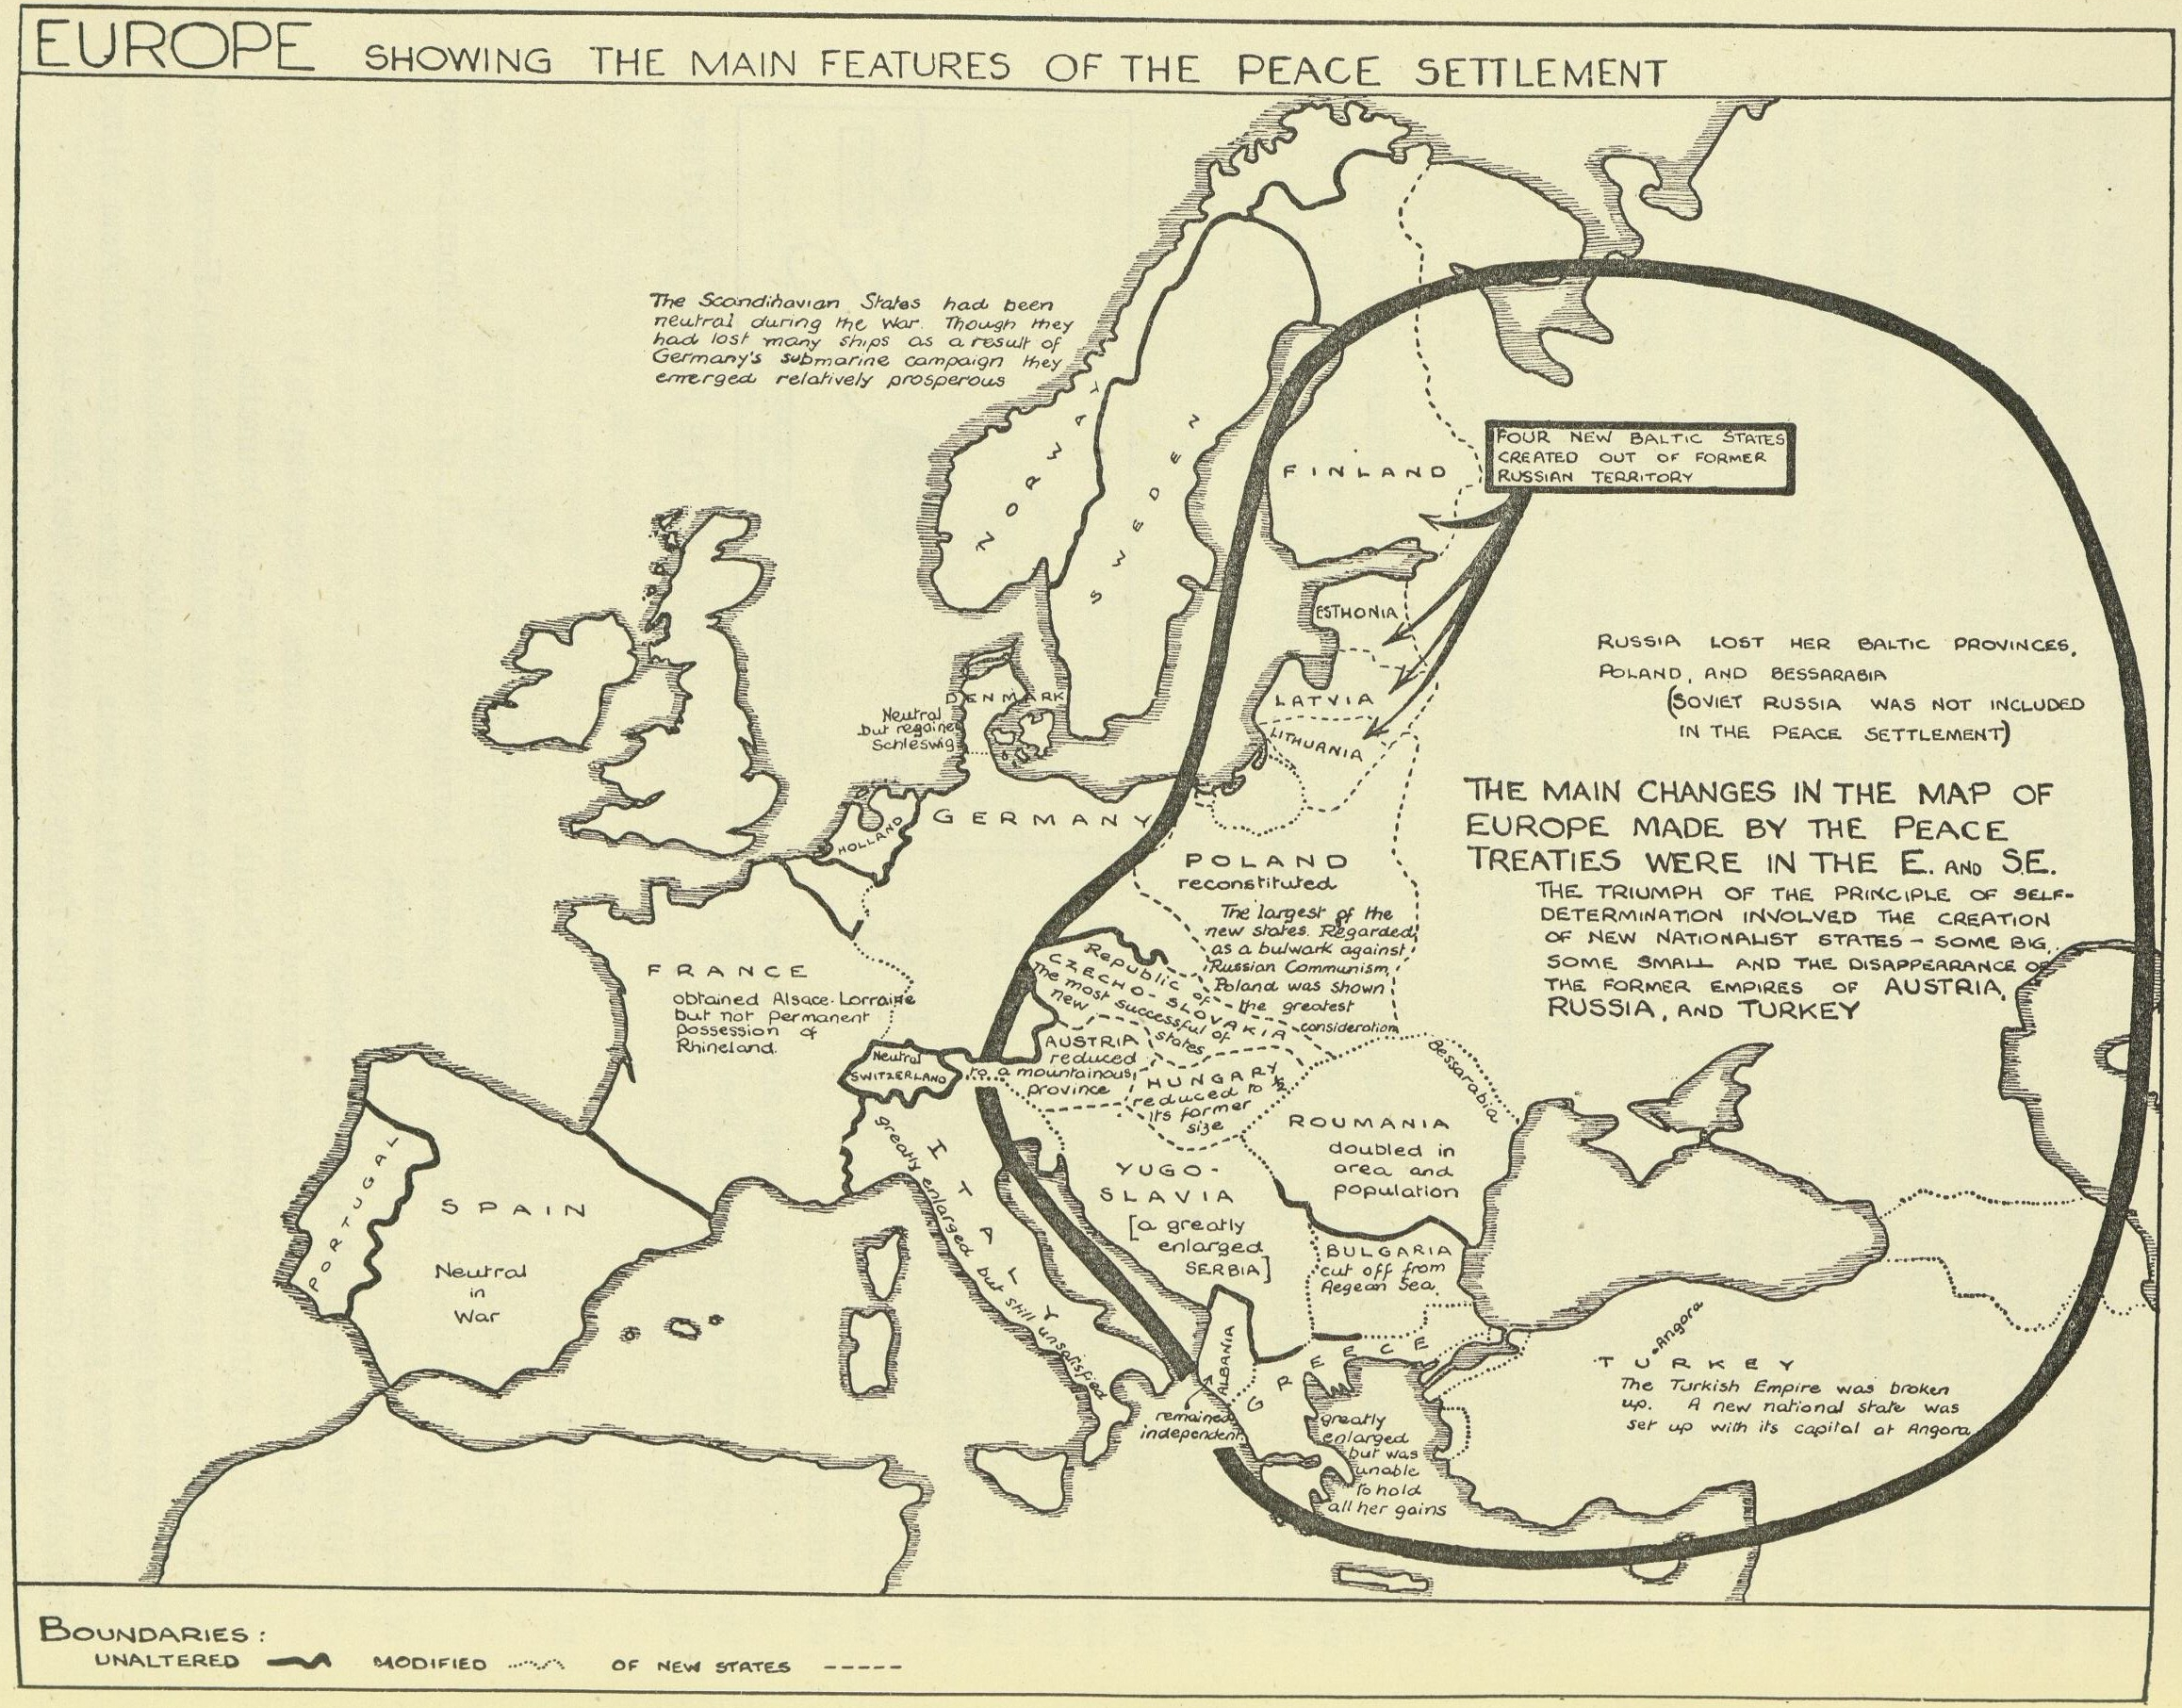 peace settlement of 1919 post ww1 The paris peace conference of 1919 was a conference organized by the victors  of world war i to negotiate the peace treaties between the allied and  adolf  hitler repudiated the debt but post world war ii reparations were.